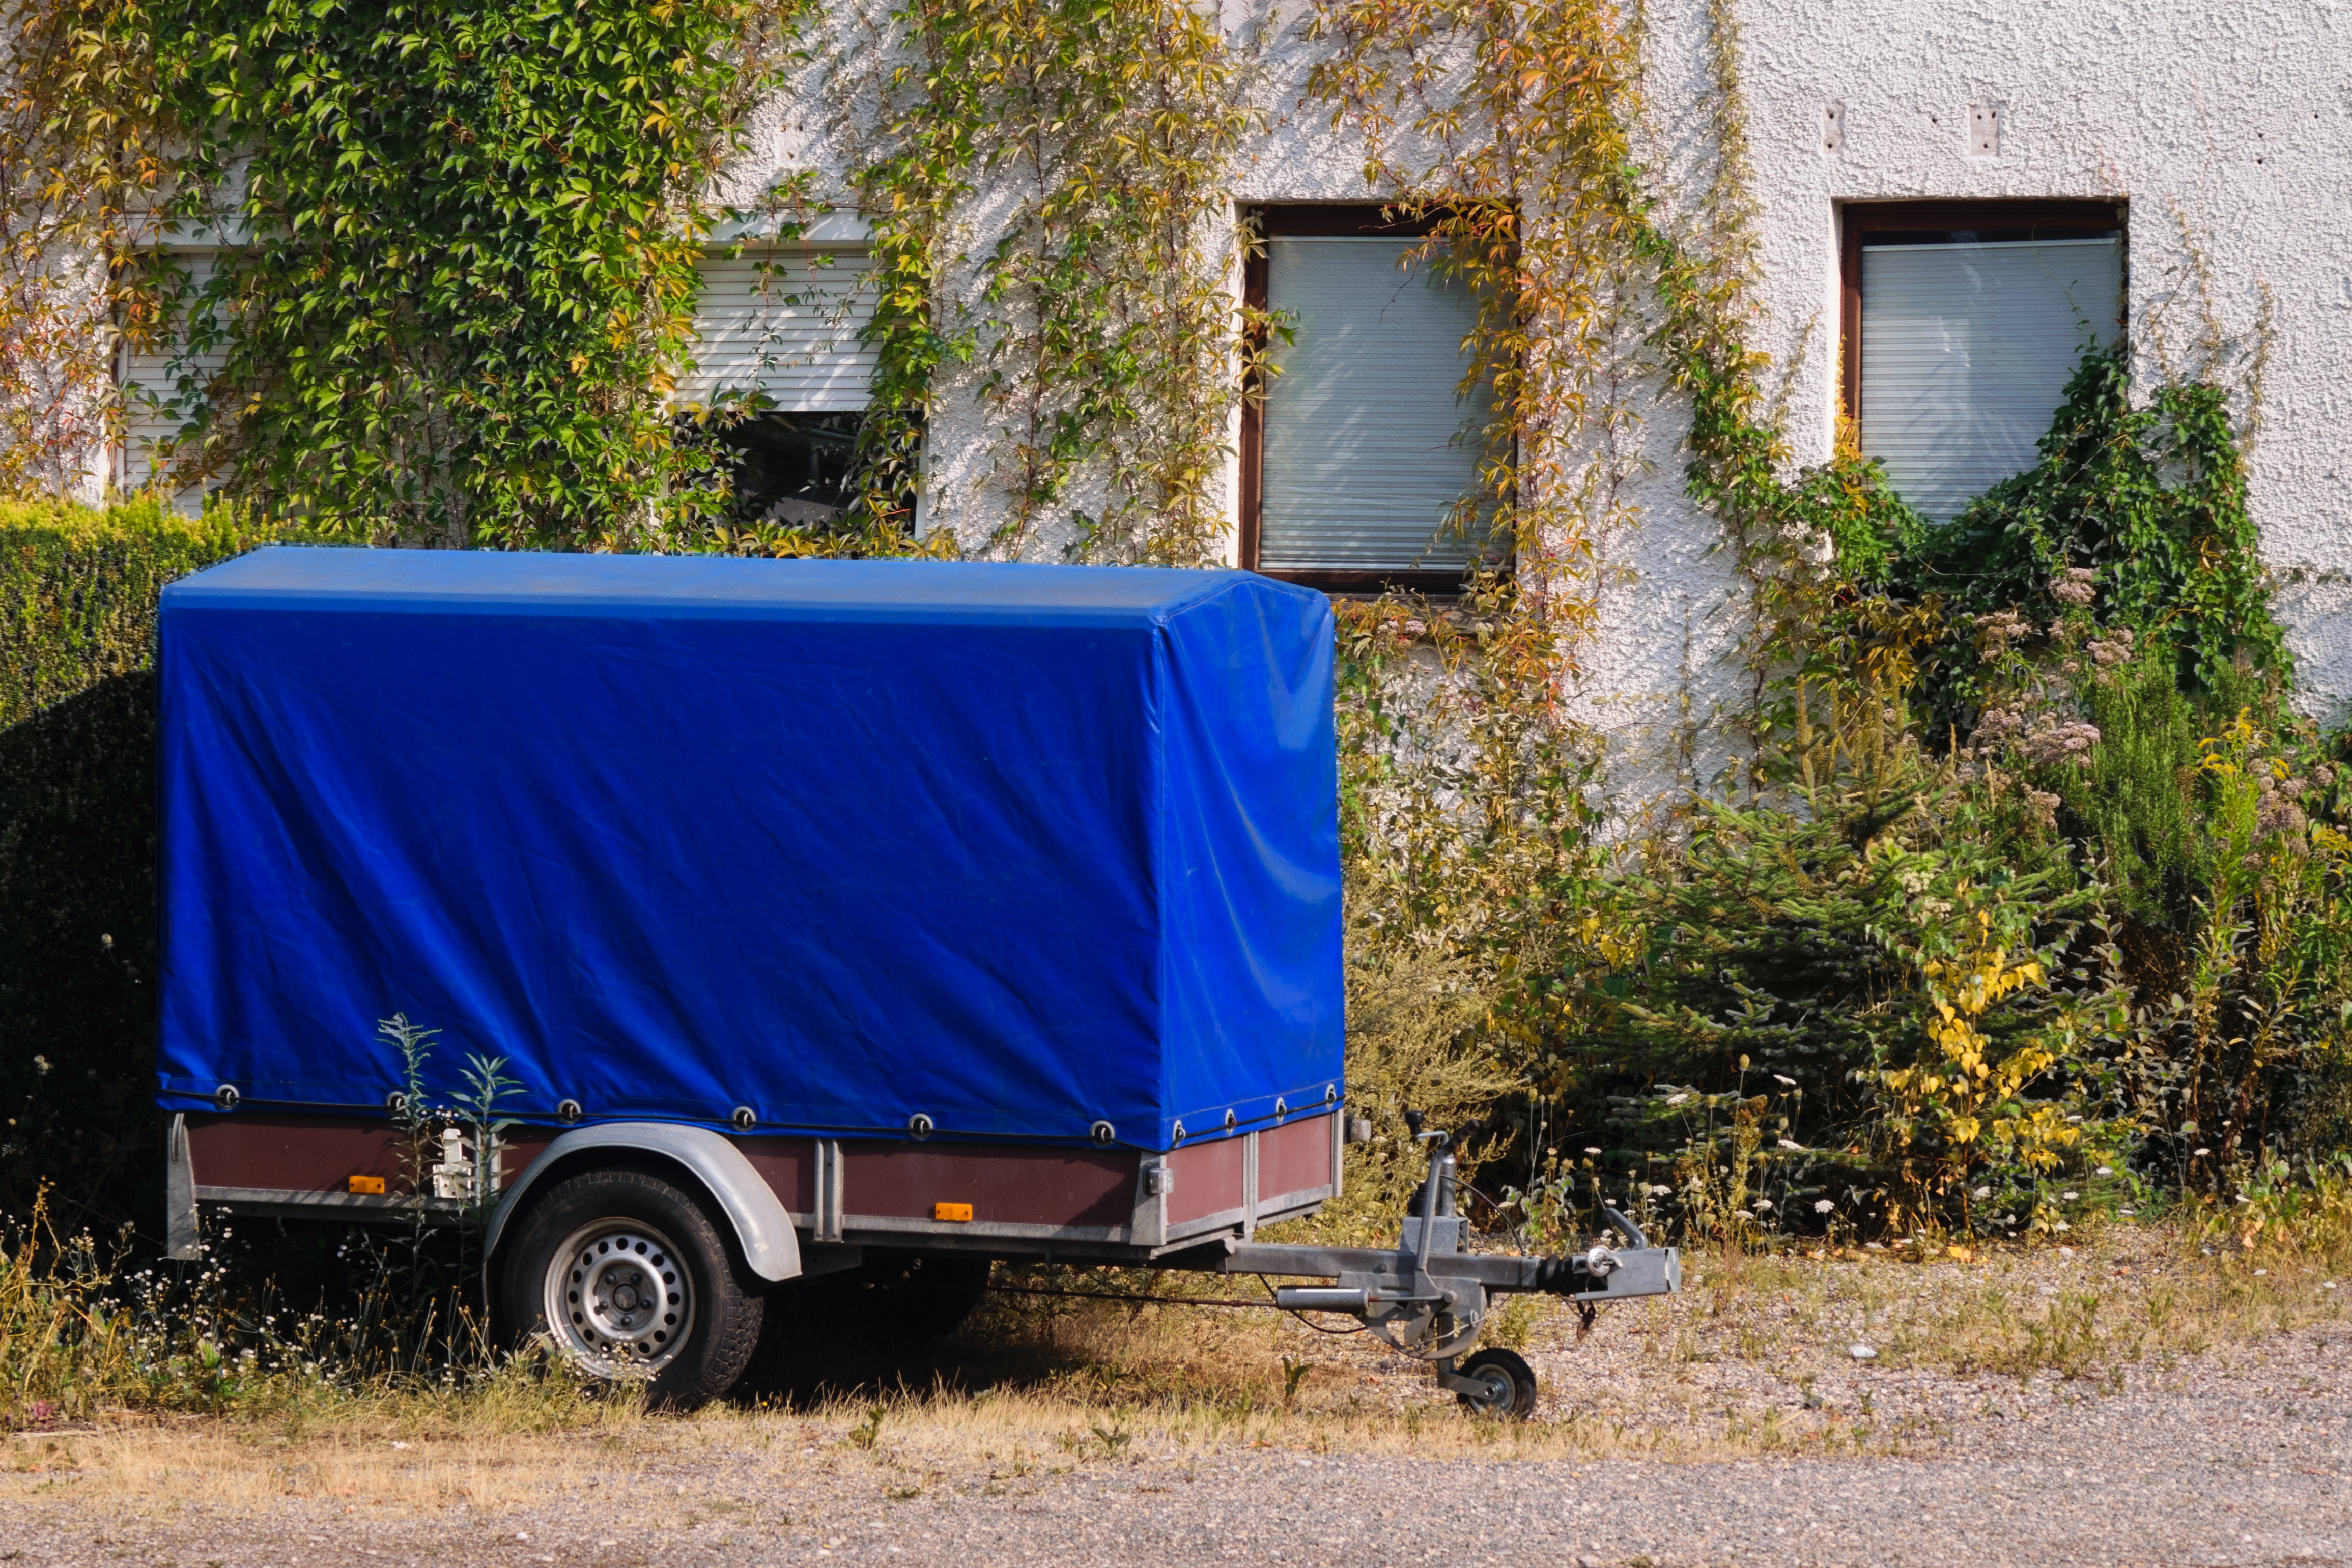 Old blue trailer parked next to an old house with ivy